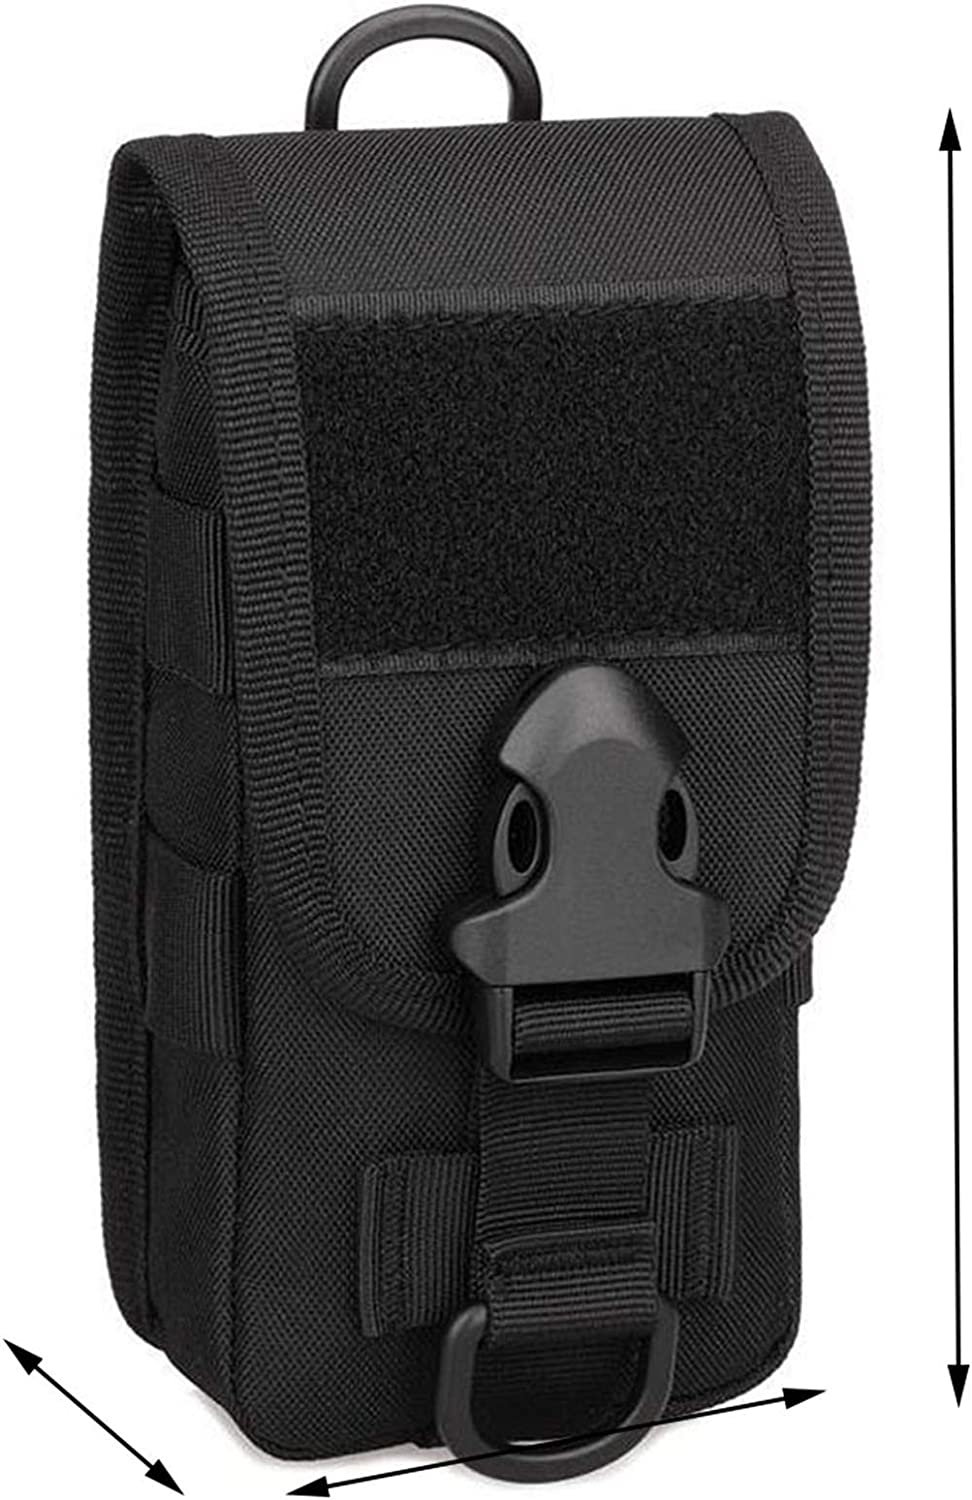 Cell Phone Holster Pouch Smartphone Pouch Crossbody Shoulder Cell Phone Holster Belt Pouches for Men Waist Bag Pack Carry Pouch for iPhone X 6 6s 7 Plus 8 Plus,Samsung Galaxy Note 8 S7 S8 S6